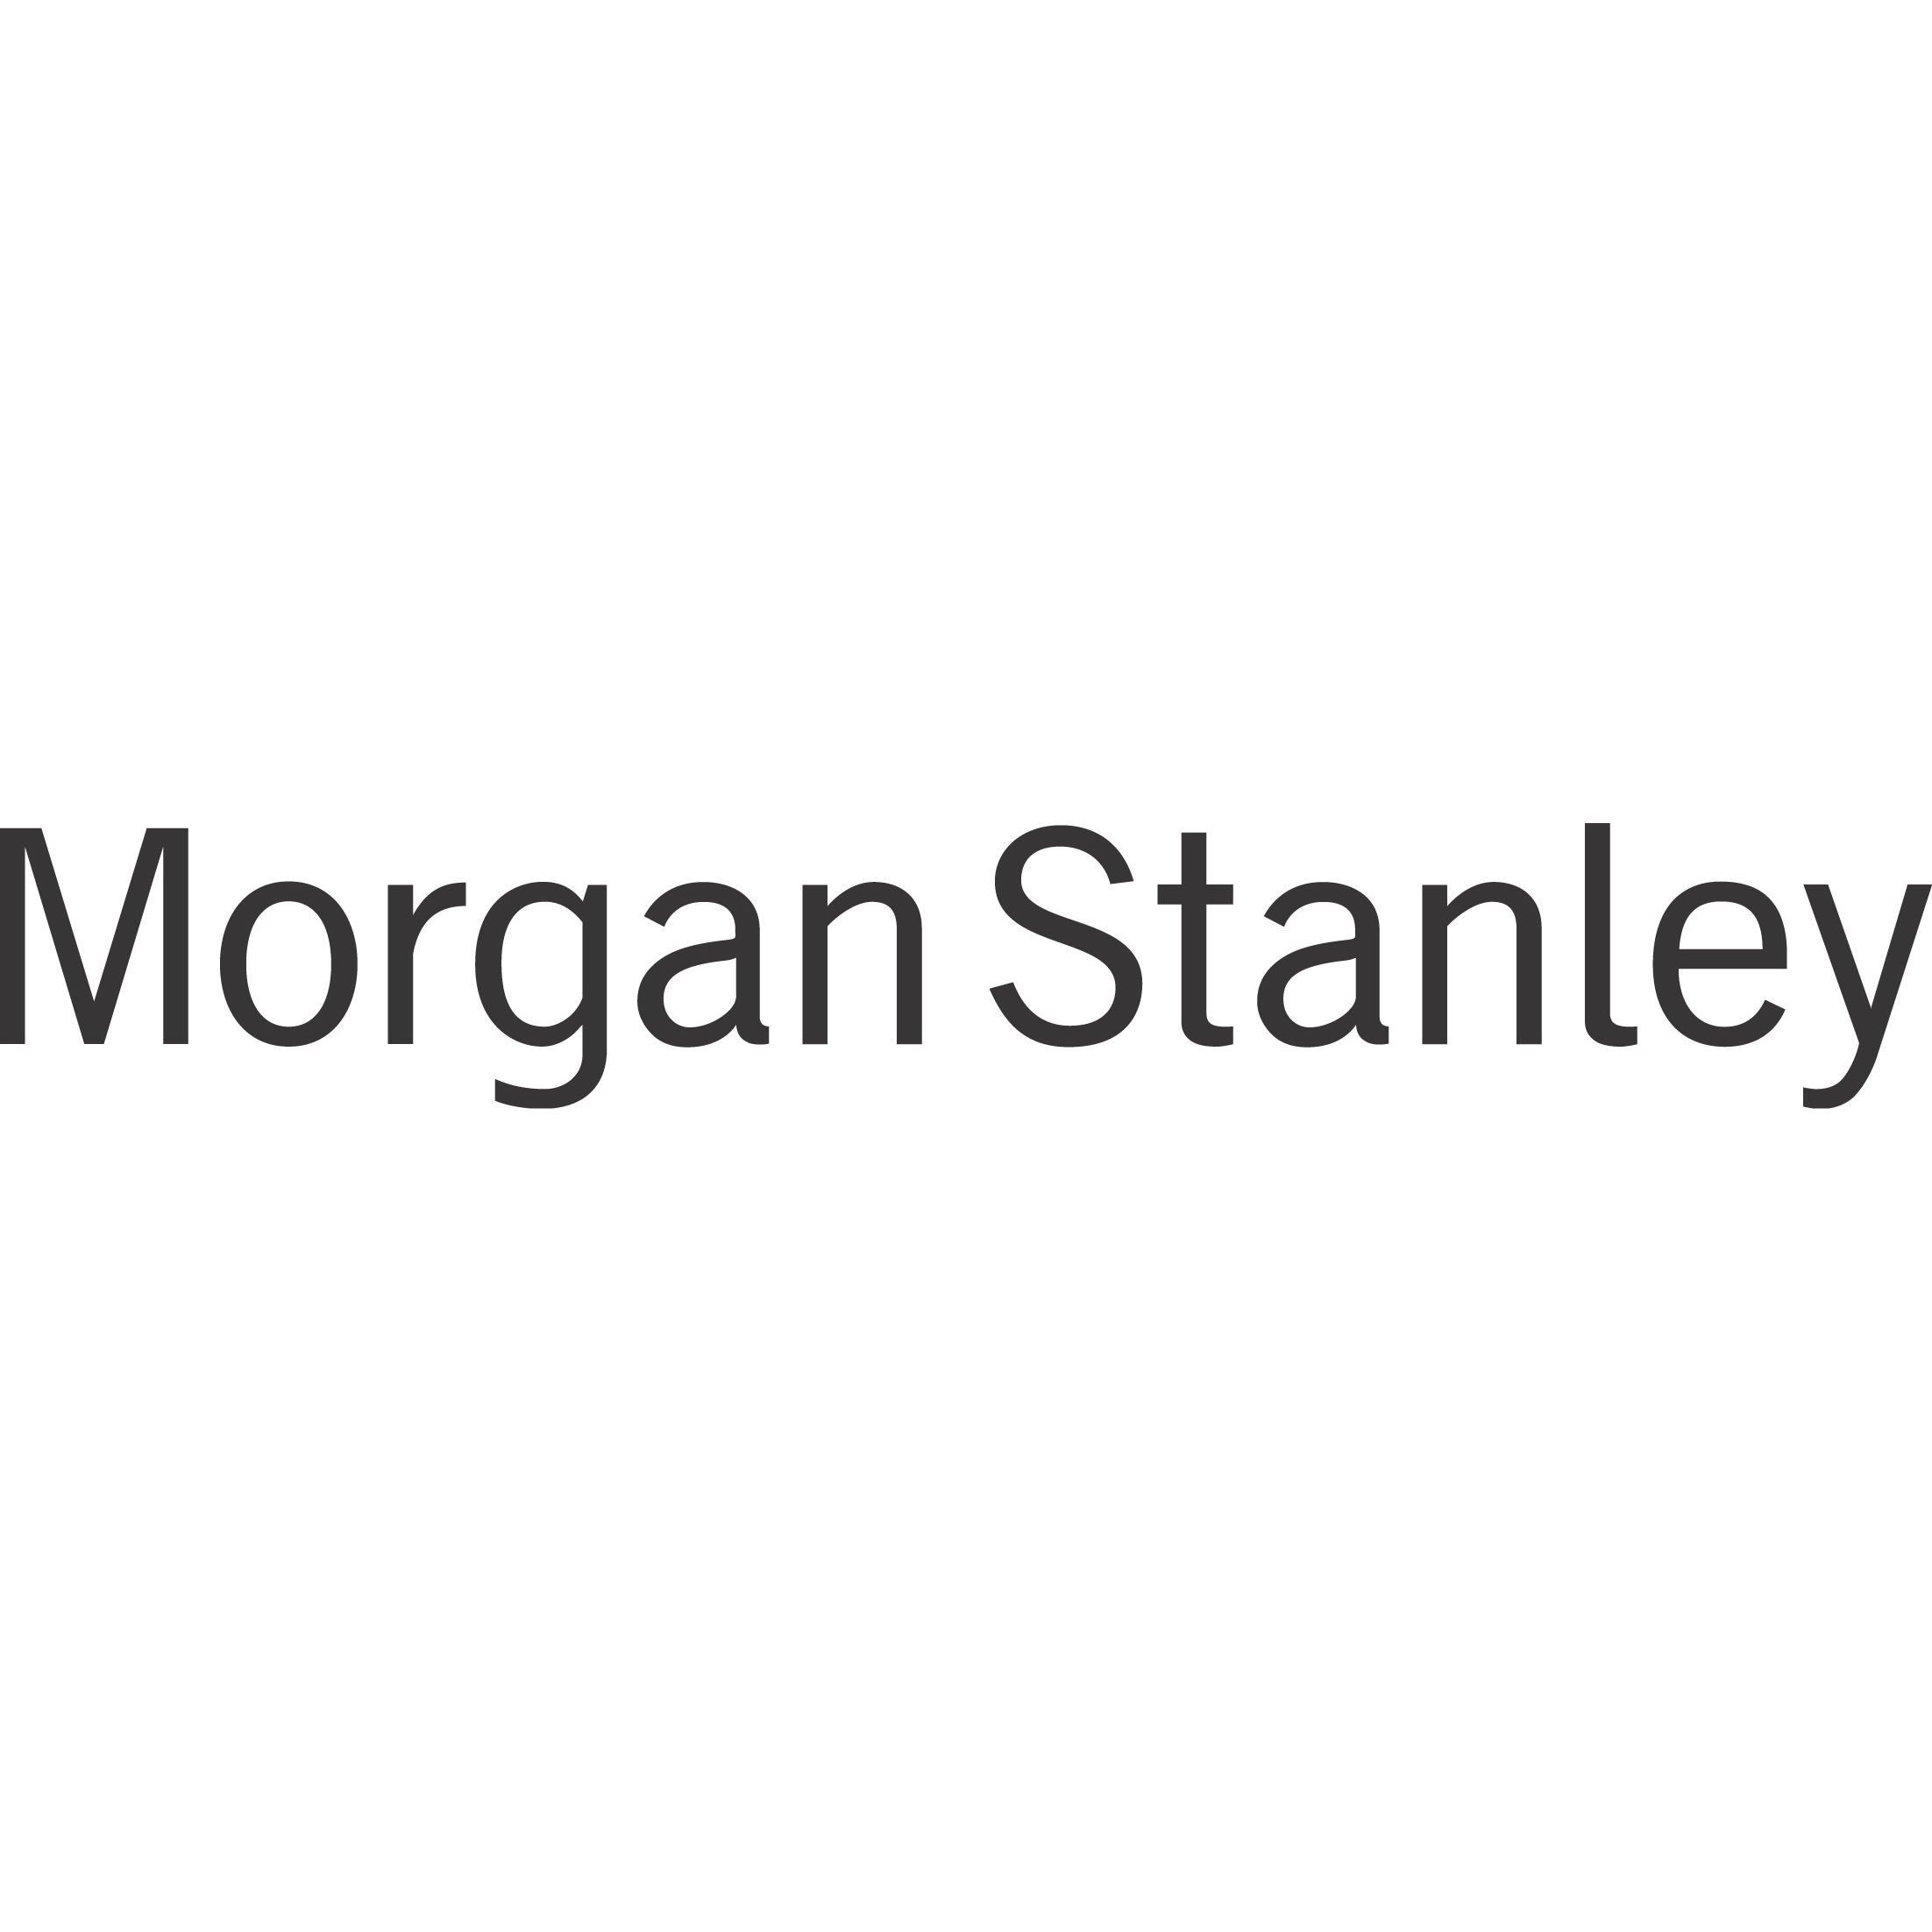 Matthew Merrifield - Morgan Stanley | Financial Advisor in Rochester,Michigan